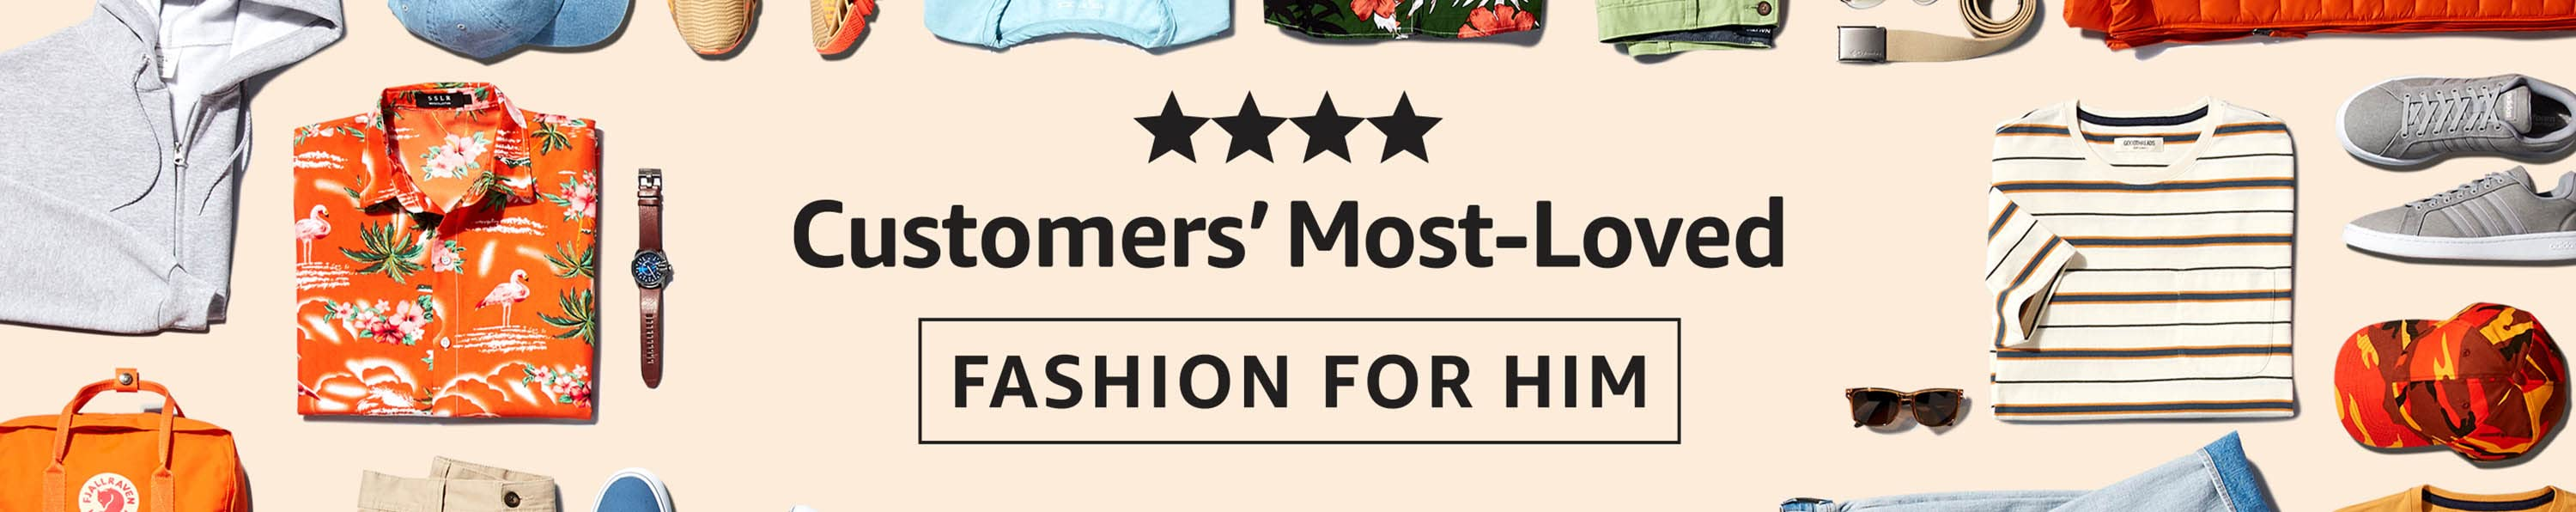 Customers' Most-Loved: Fashion for Him